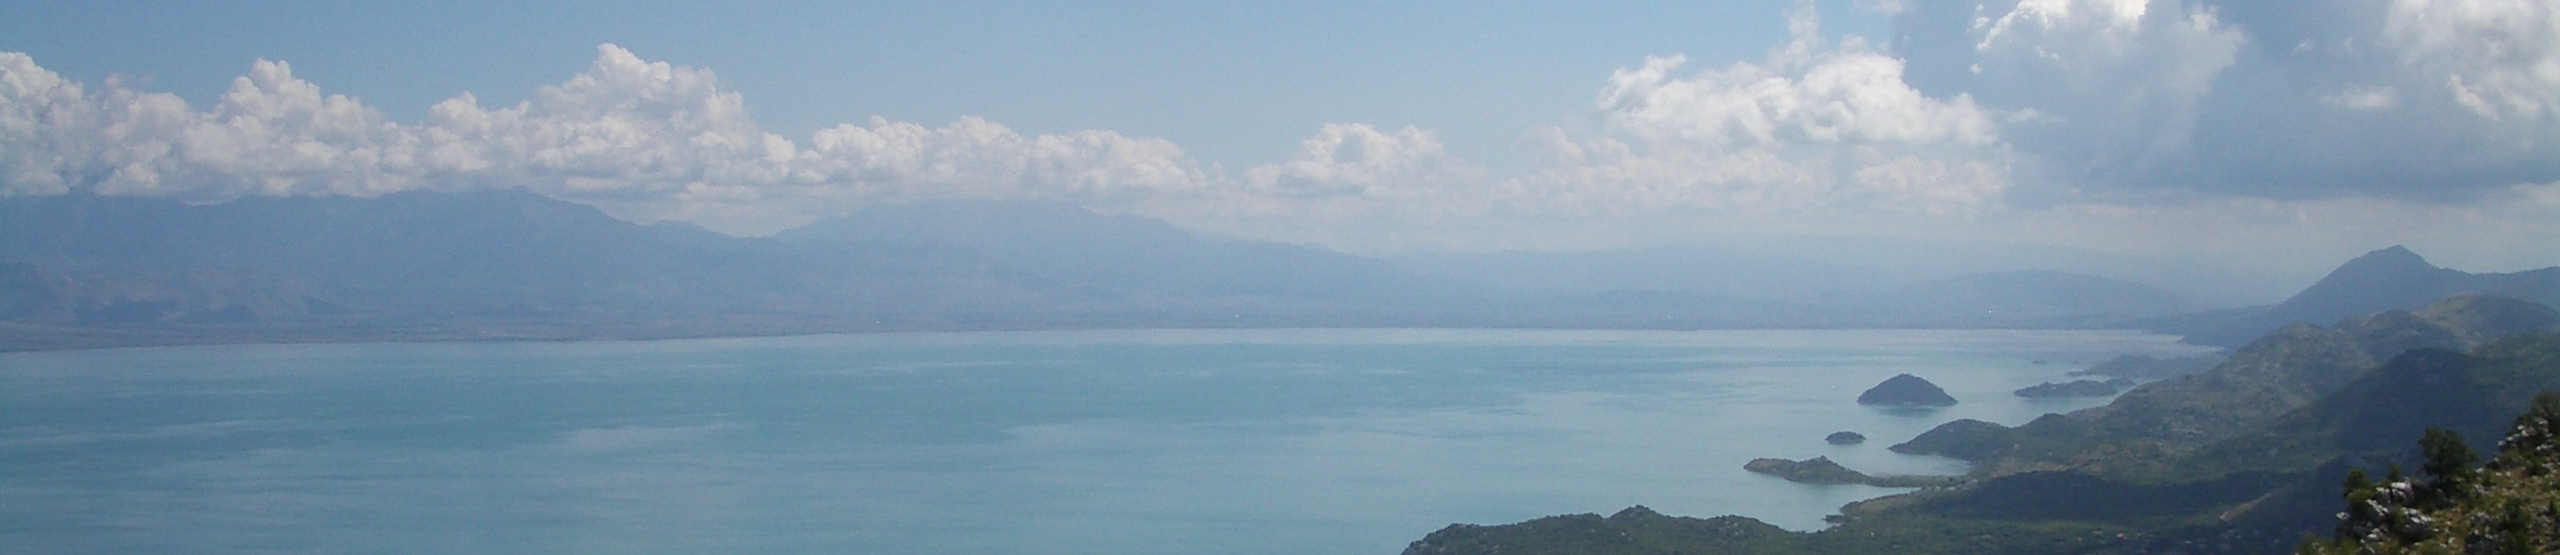 Skadar lake, the largest lake in the Balkans and a famous beauty spot